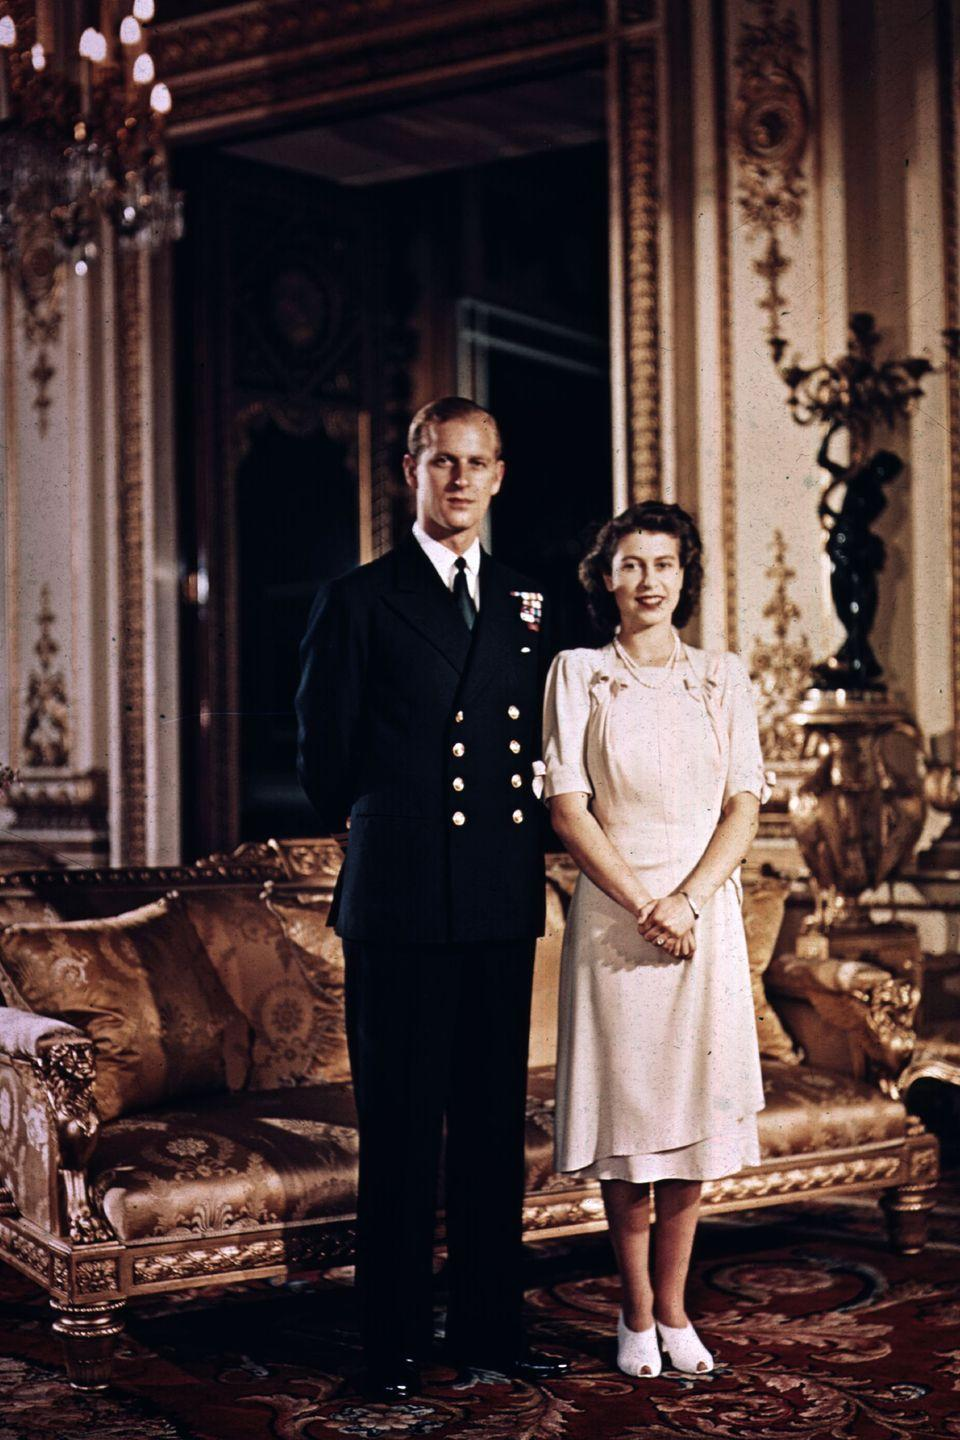 <p> The engaged couple were photographed at Buckingham Palace shortly before their stunning wedding.</p>